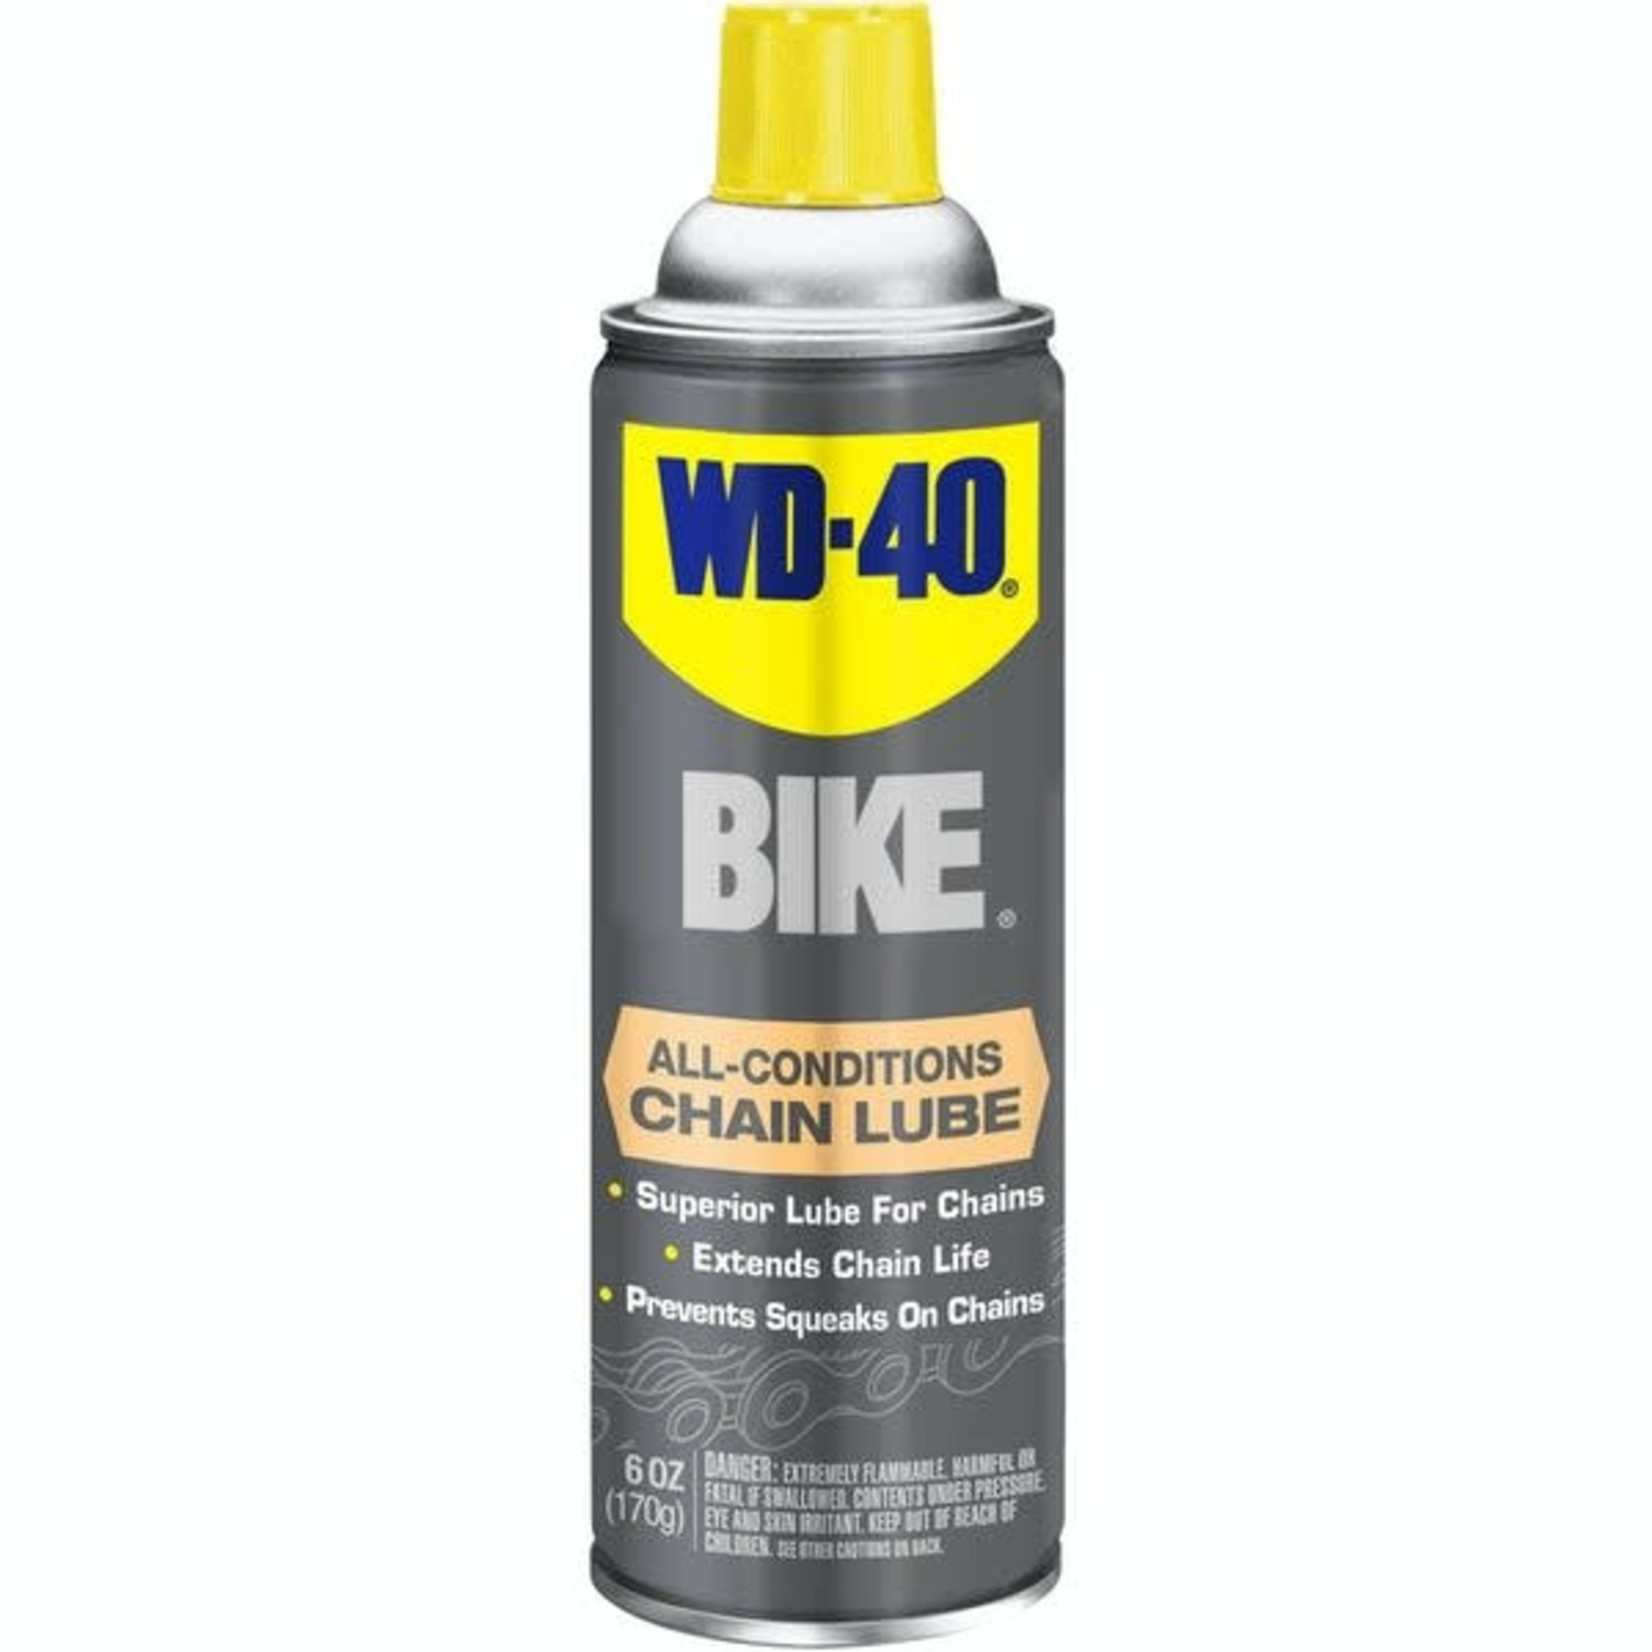 All Conditions, Lube, 170g